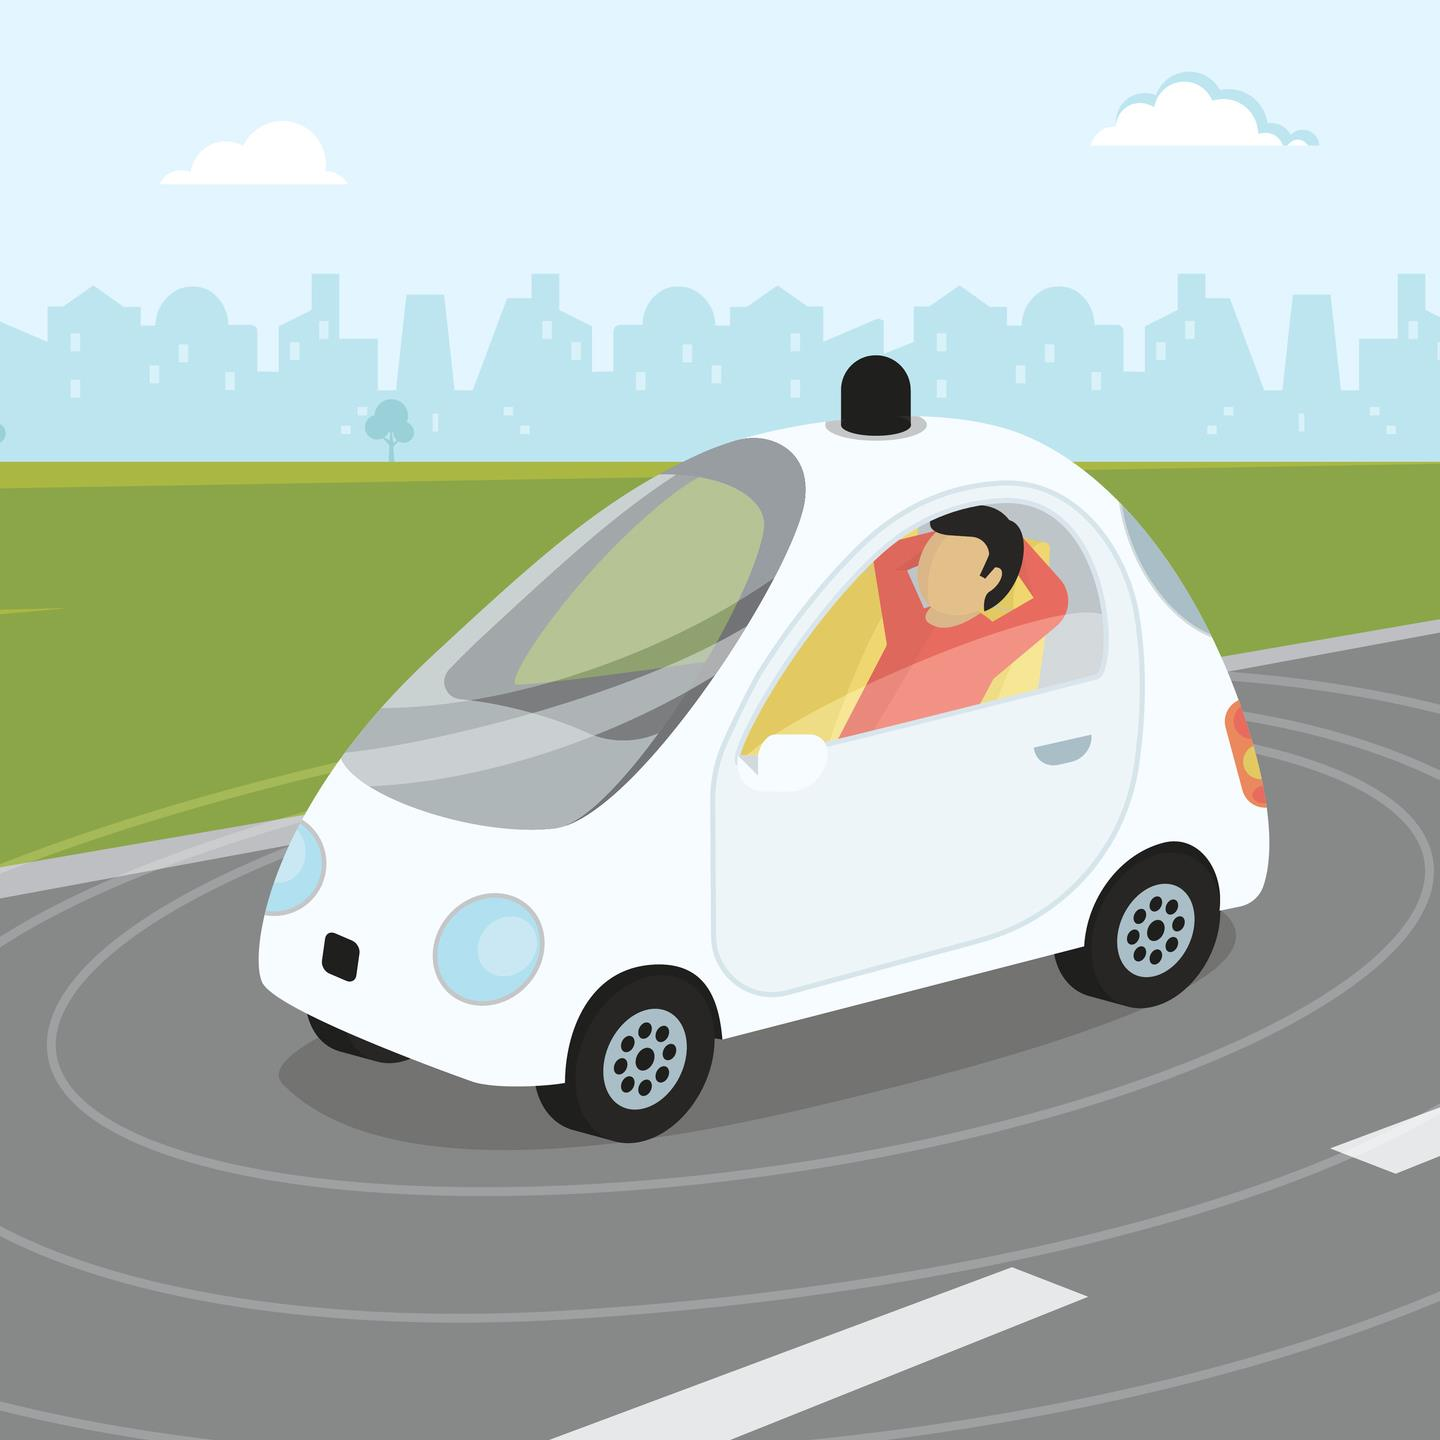 Uber hid its 'stolen' self-driving tech from court, Waymo charges